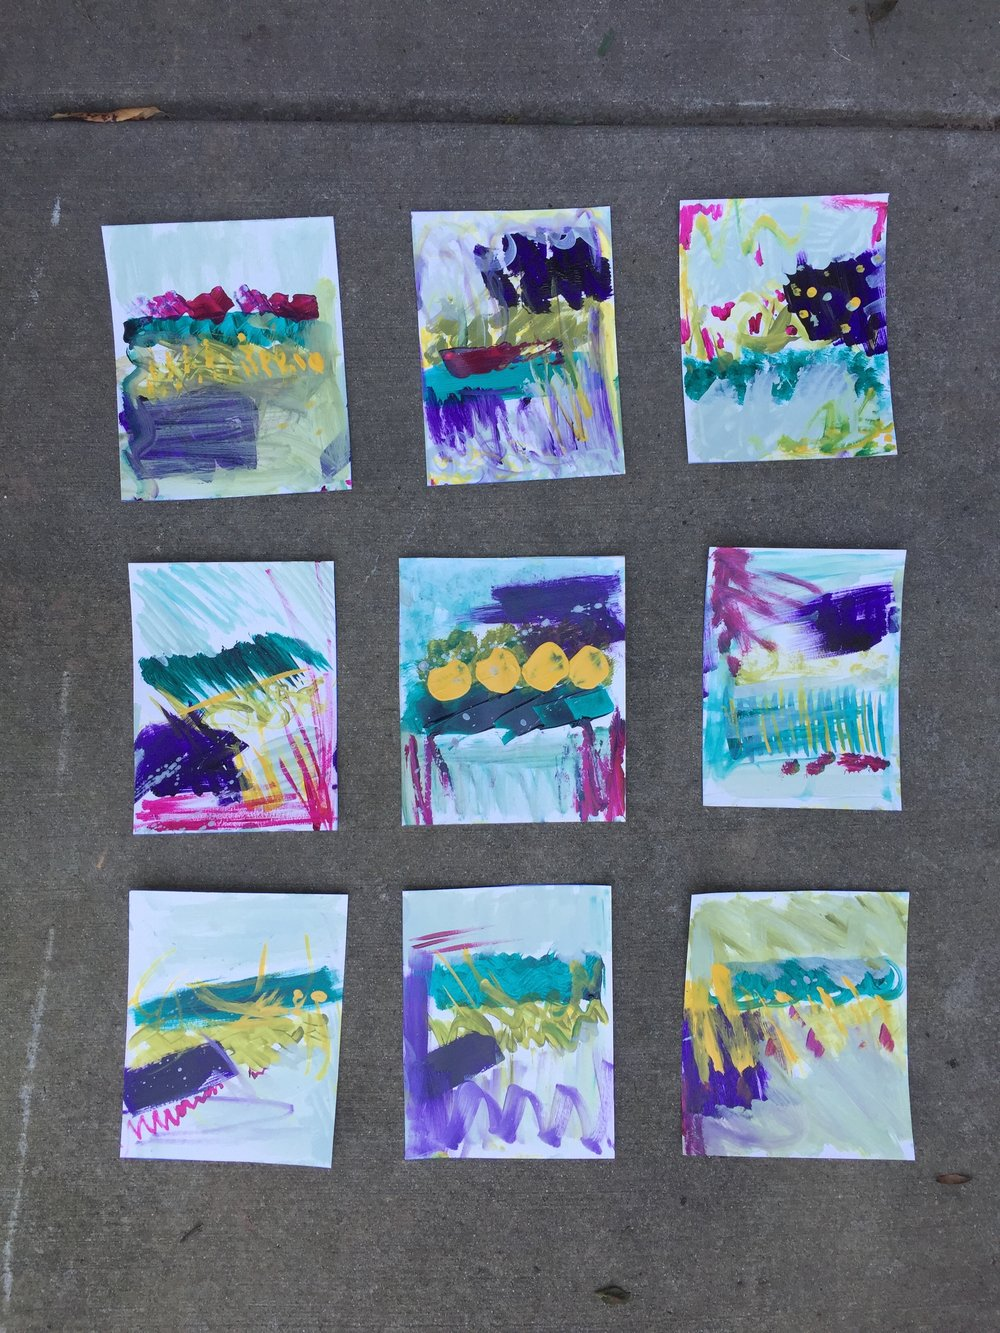 Look! My very first homework from Tara's course. I've come a LONG way.